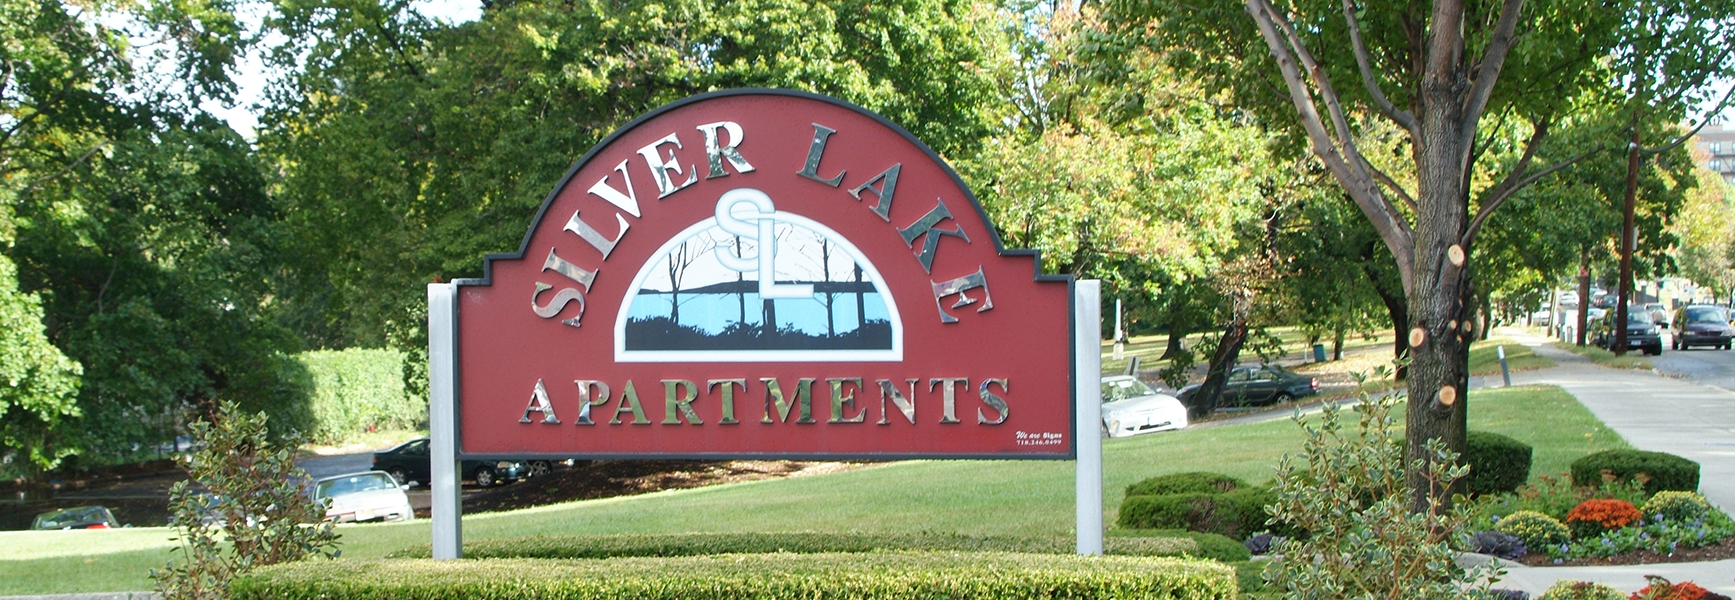 Silver Lake Apartments - Staten Island's Most Exciting Apartment